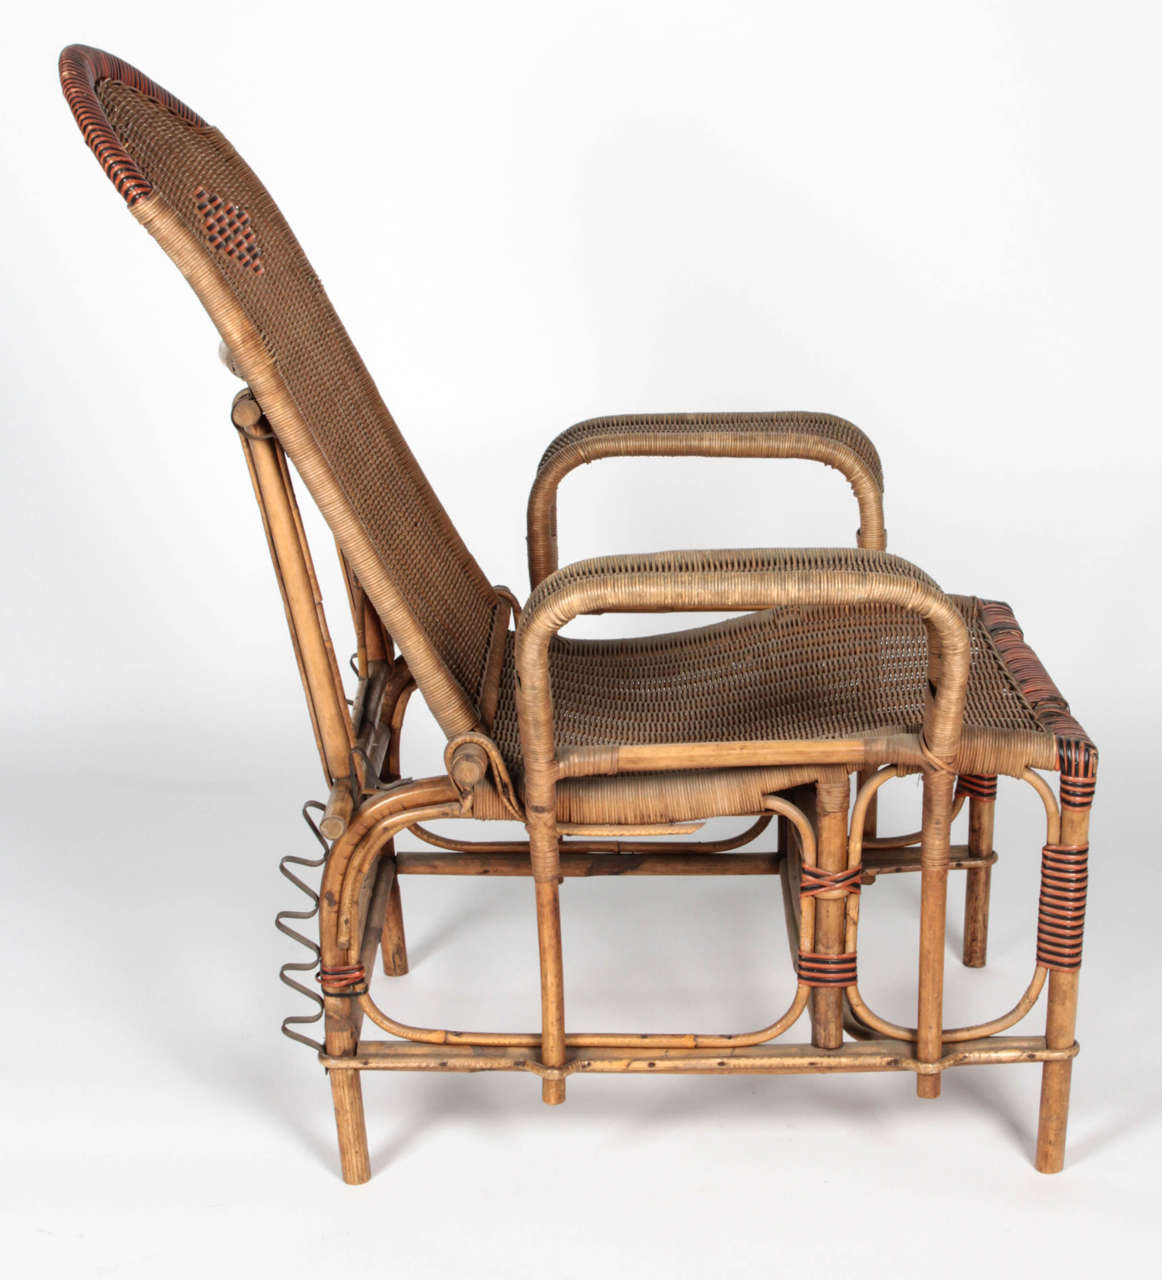 foot rests for chairs baby trend high chair art deco reclining wicker lounge with detachable